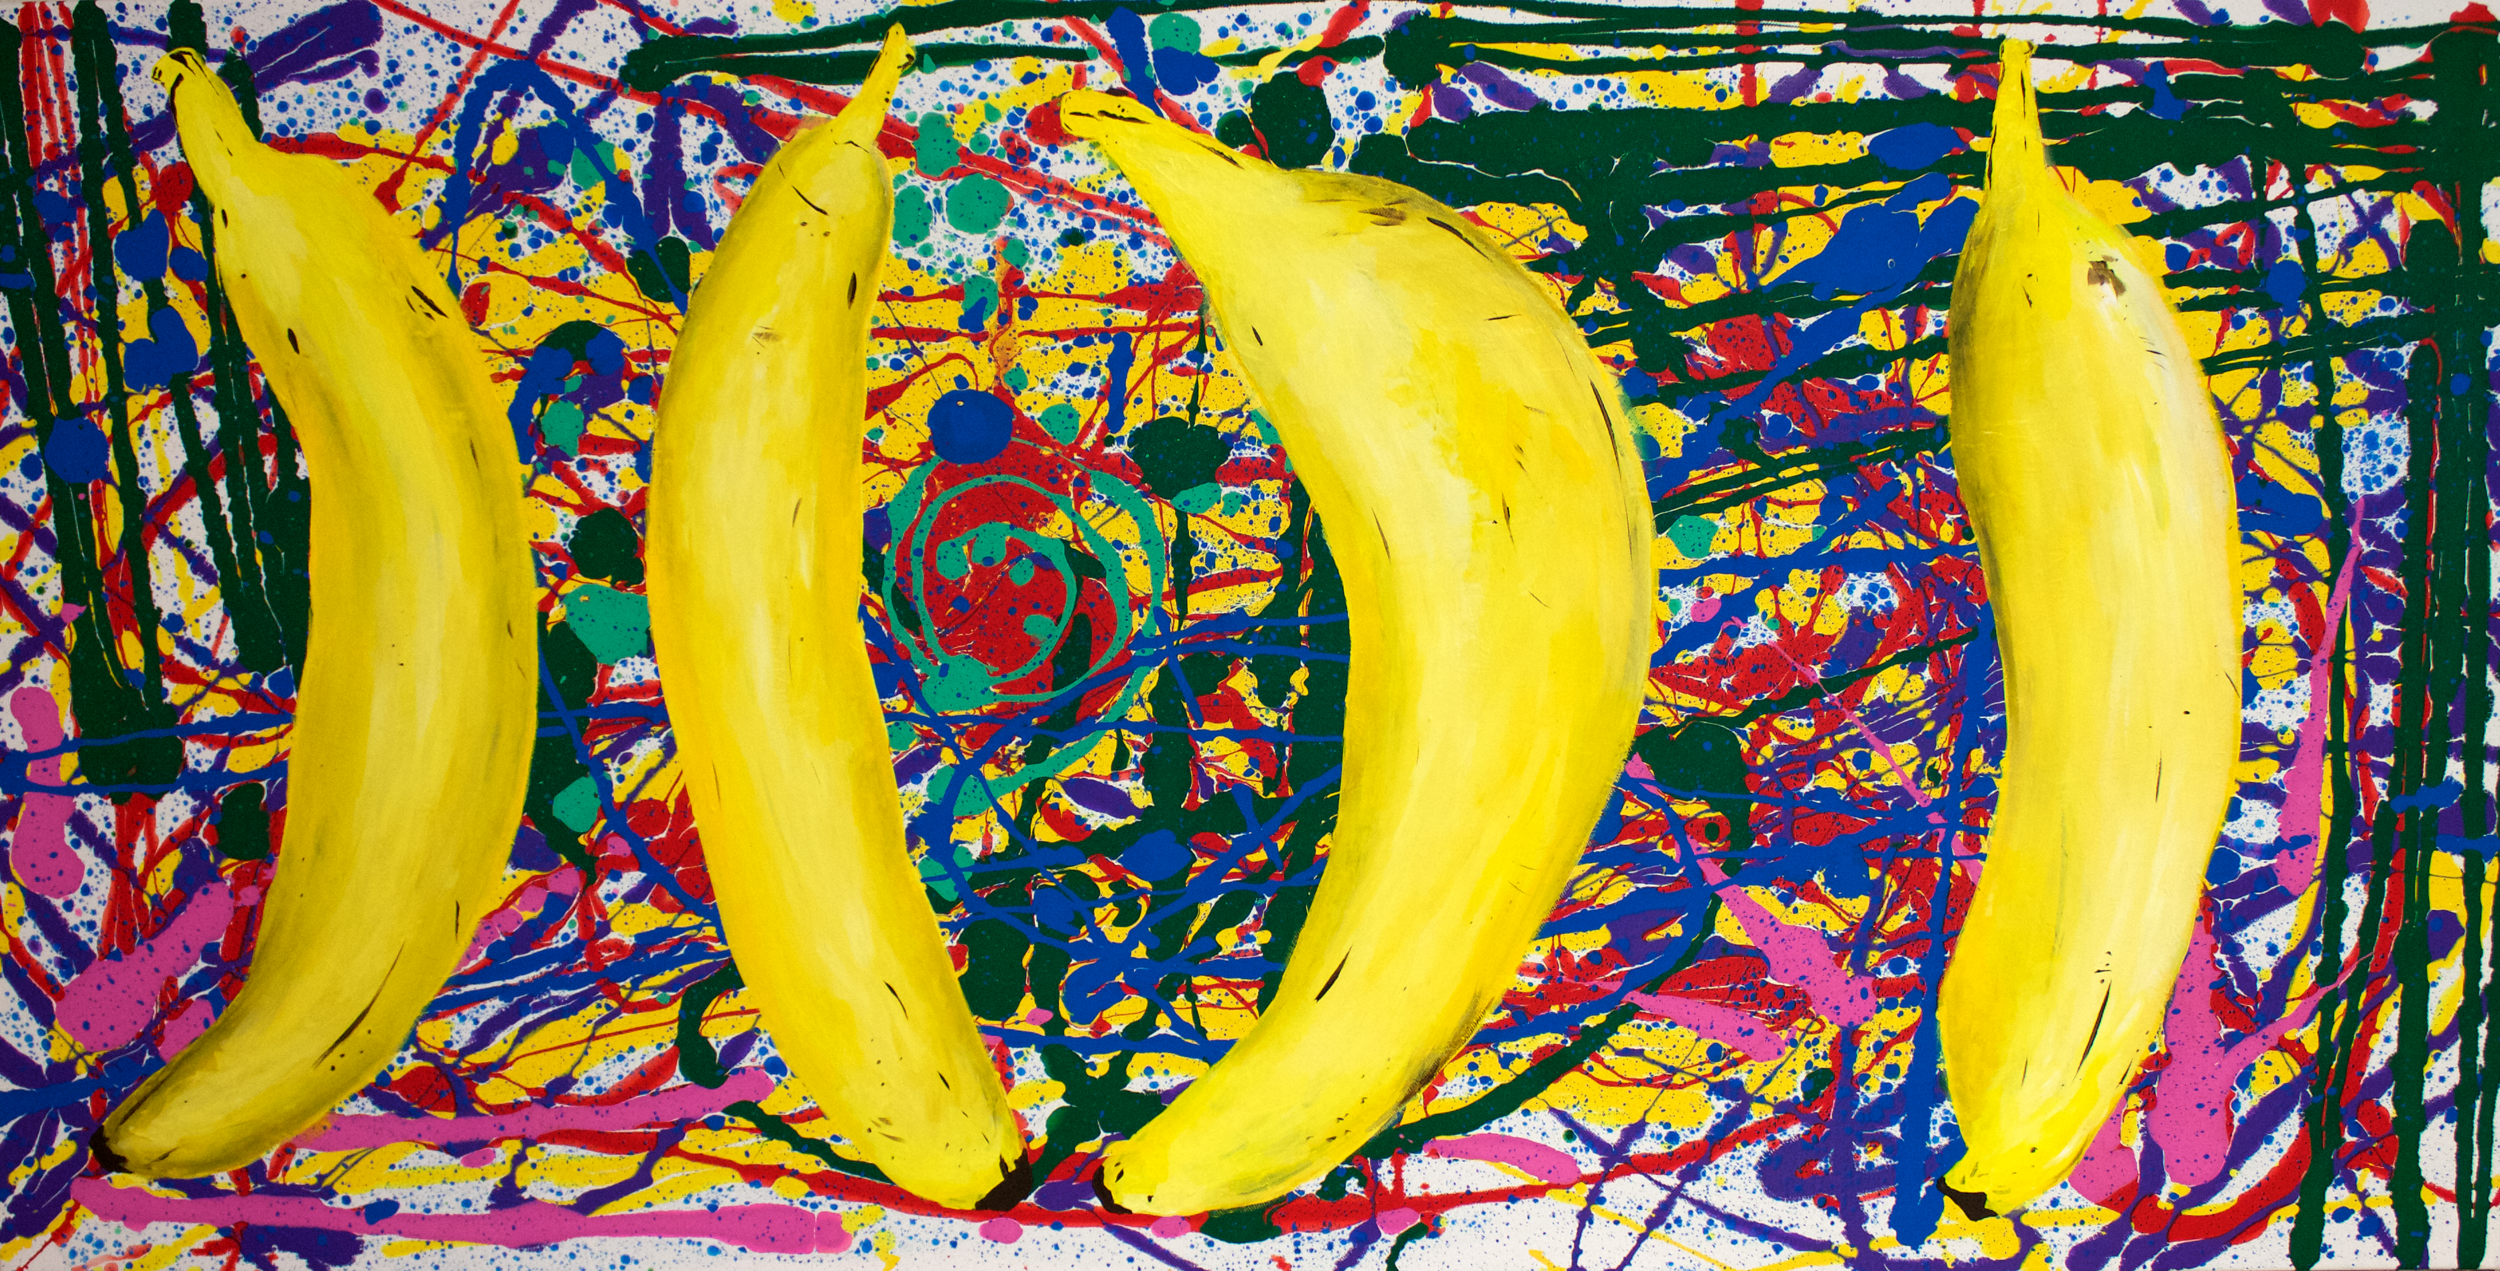 Nanners, 24 x 48 inches.